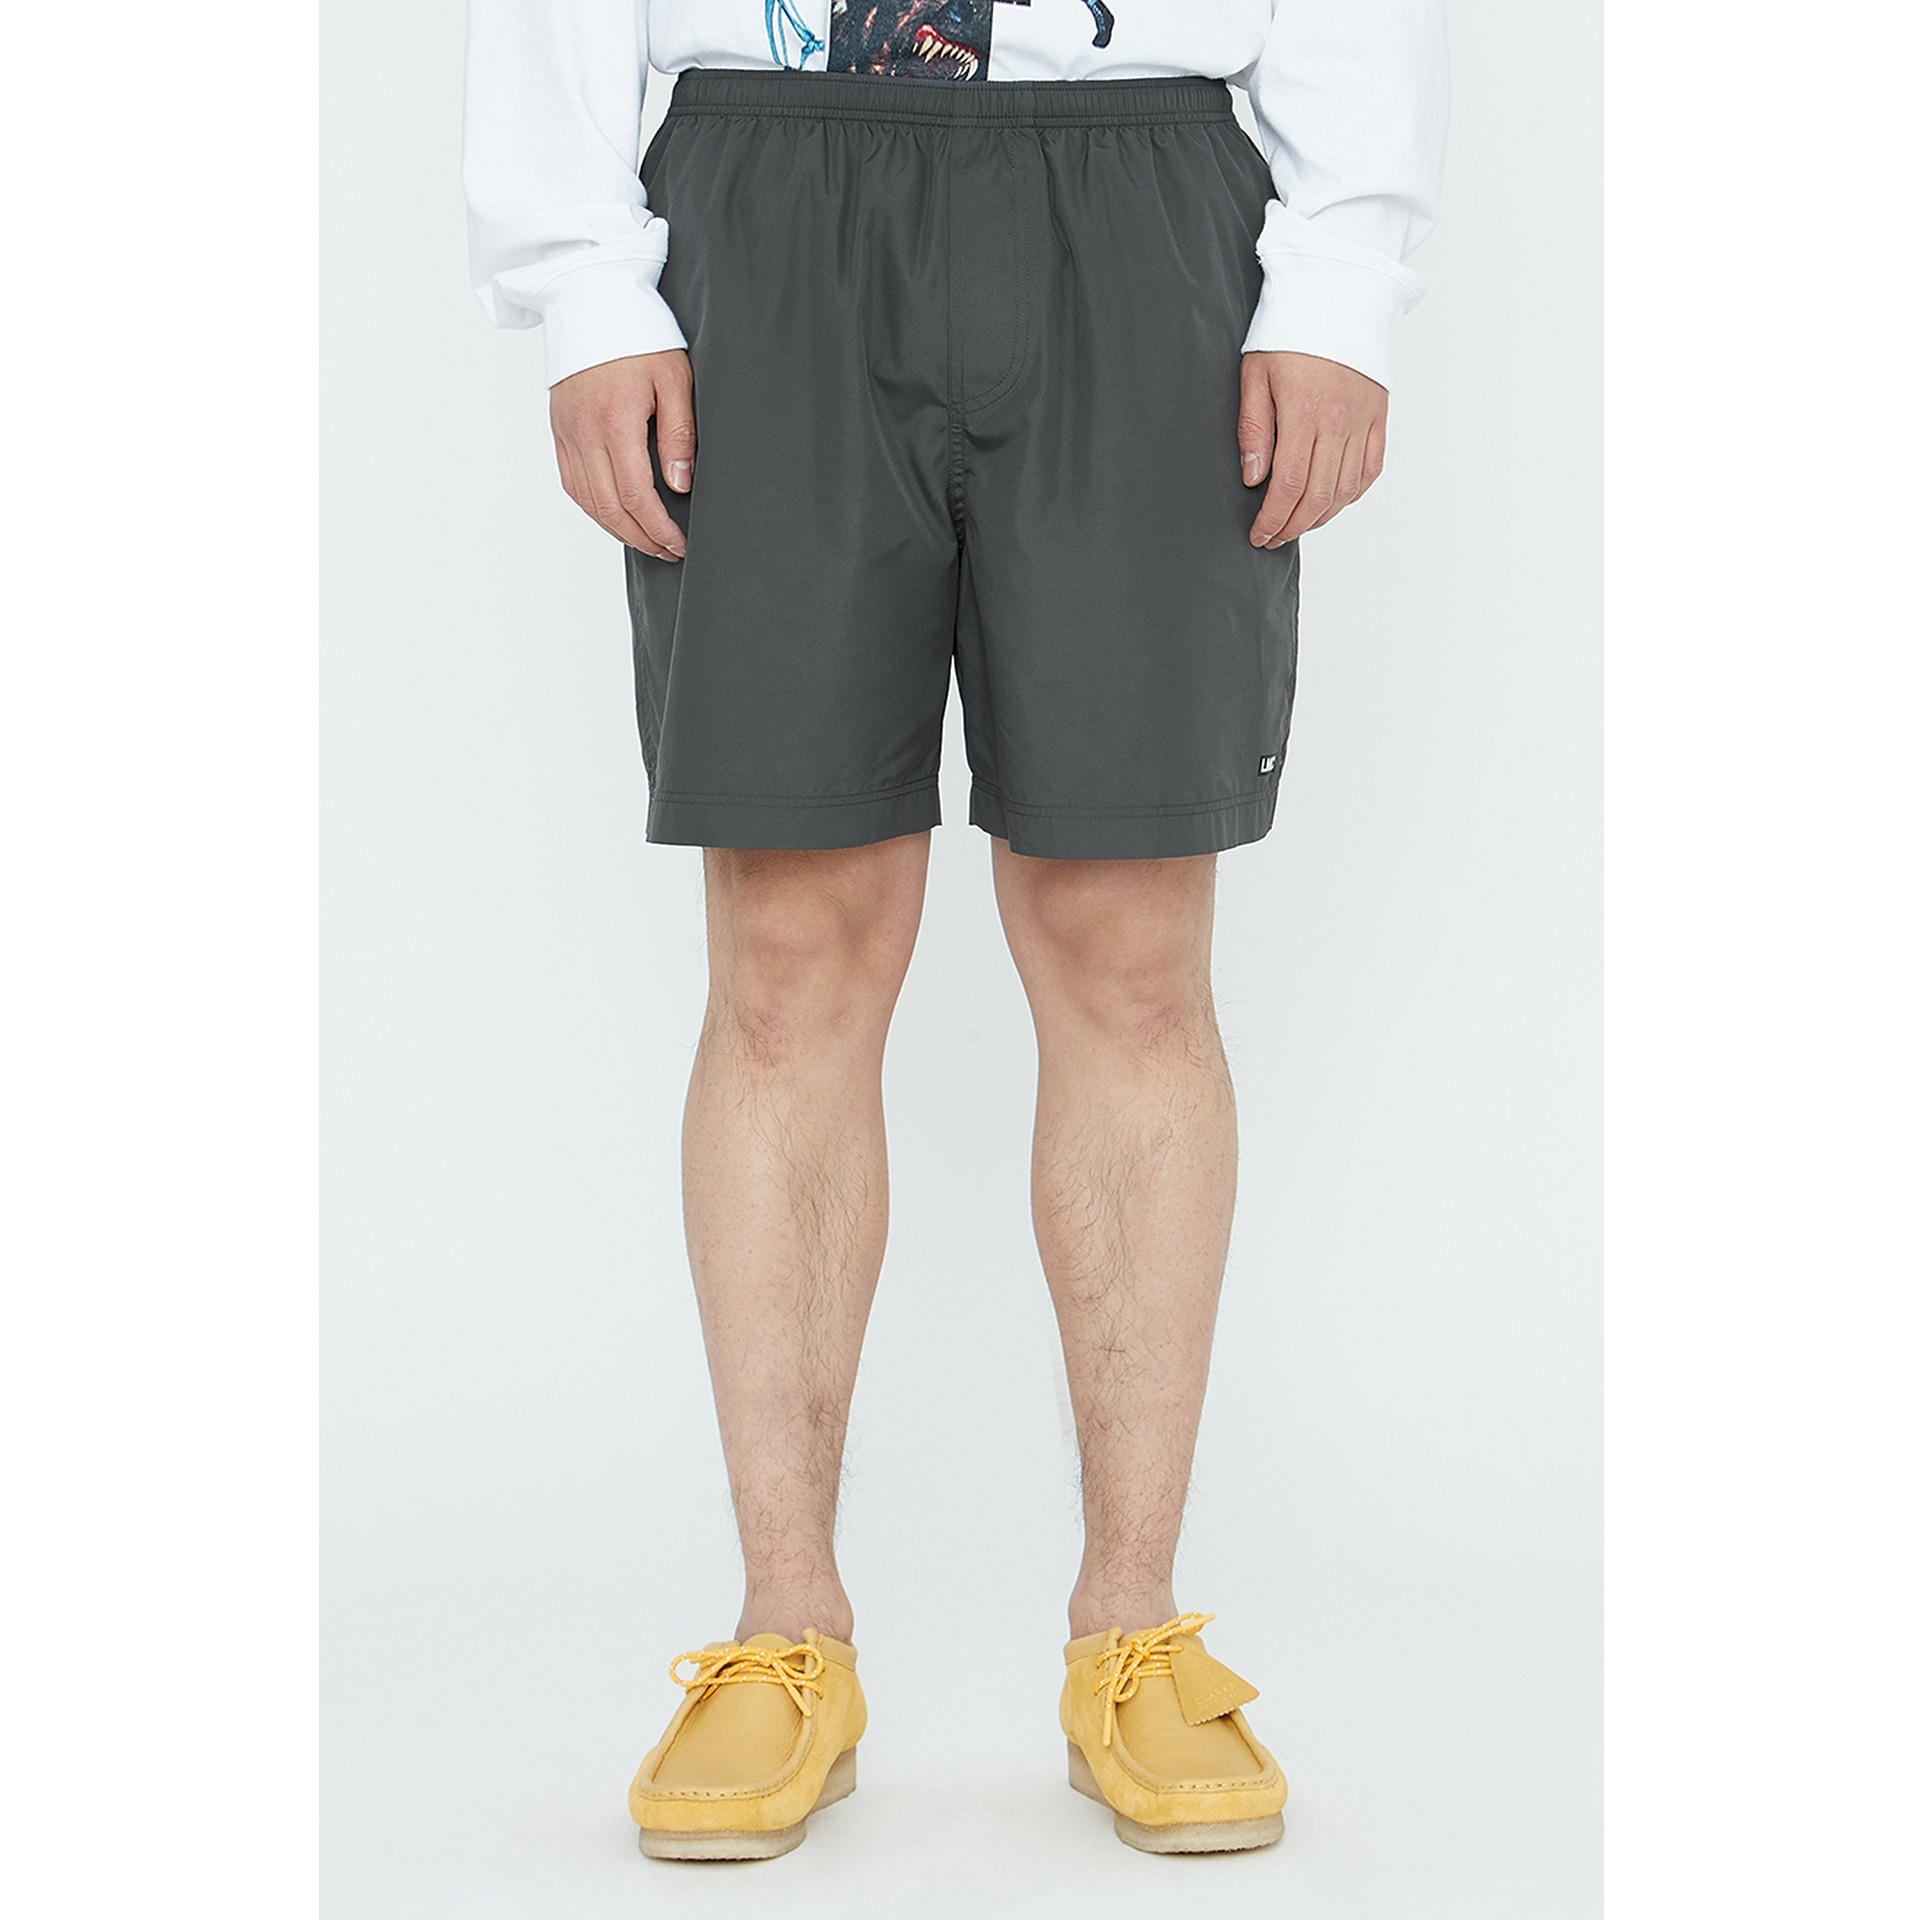 LMC IDEAL TRACK SHORTS gray